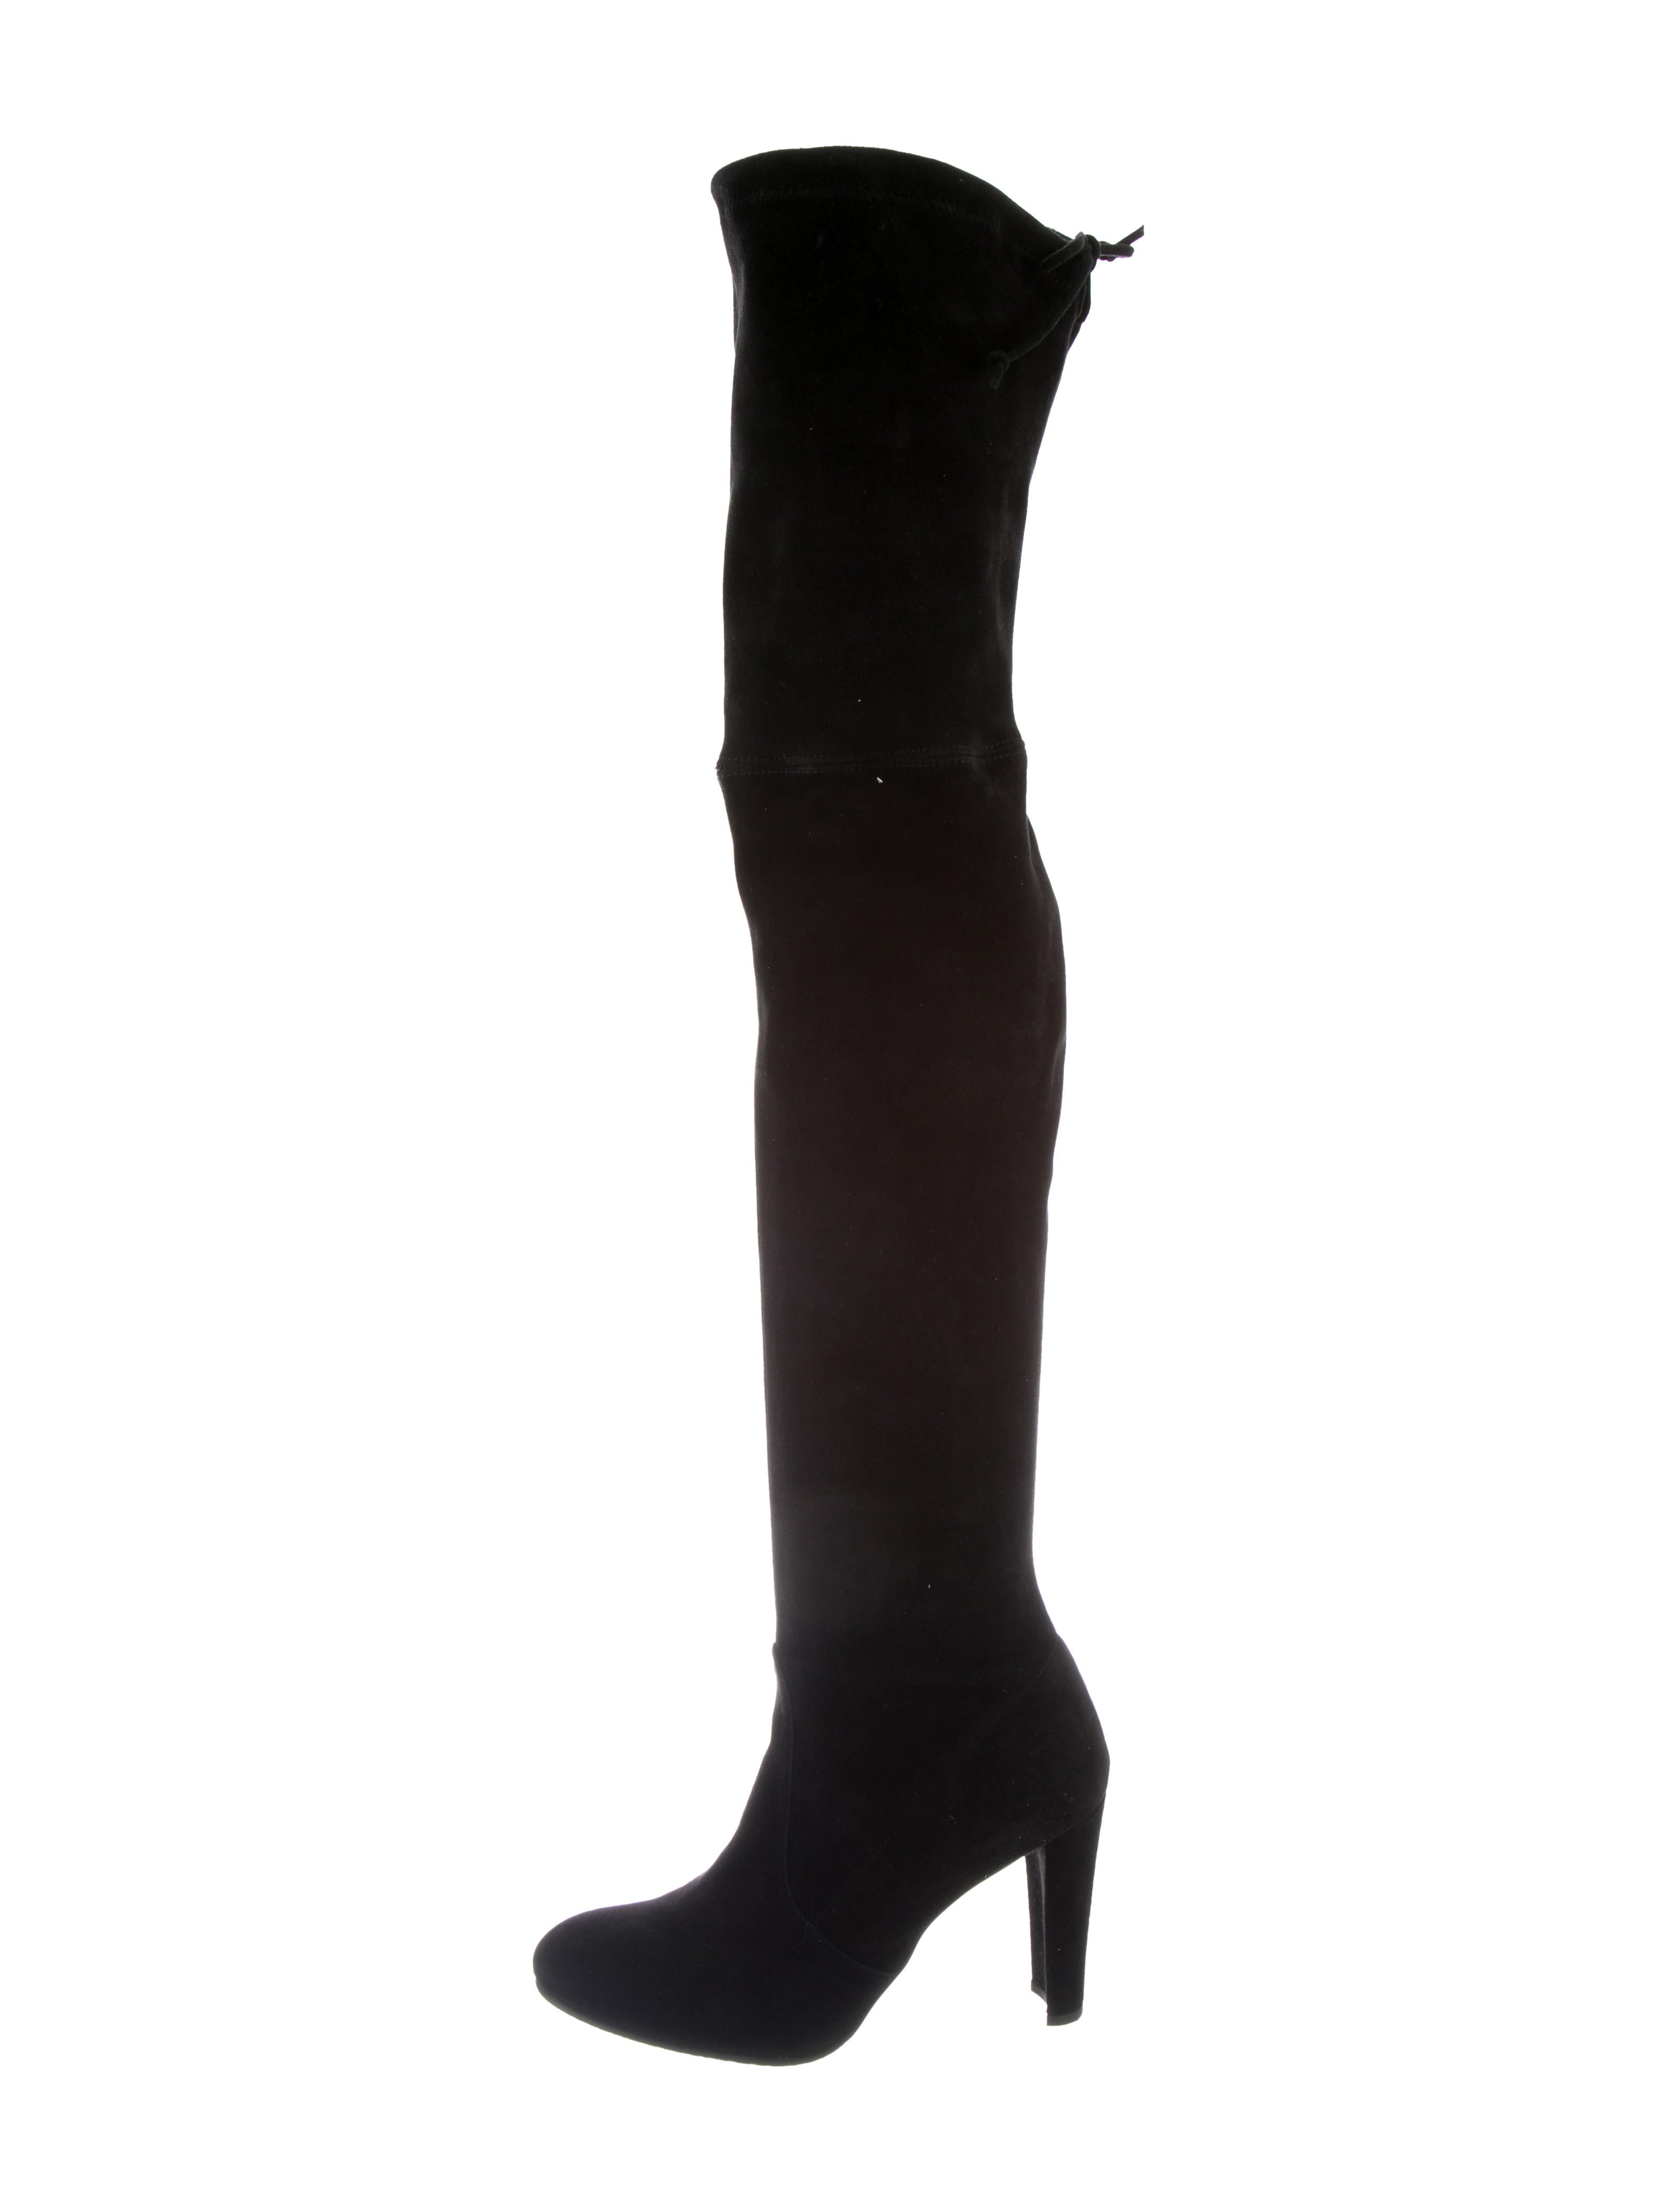 41d204b4727 Stuart Weitzman Highland Over-The-Knee Boots - Shoes - WSU76092 ...